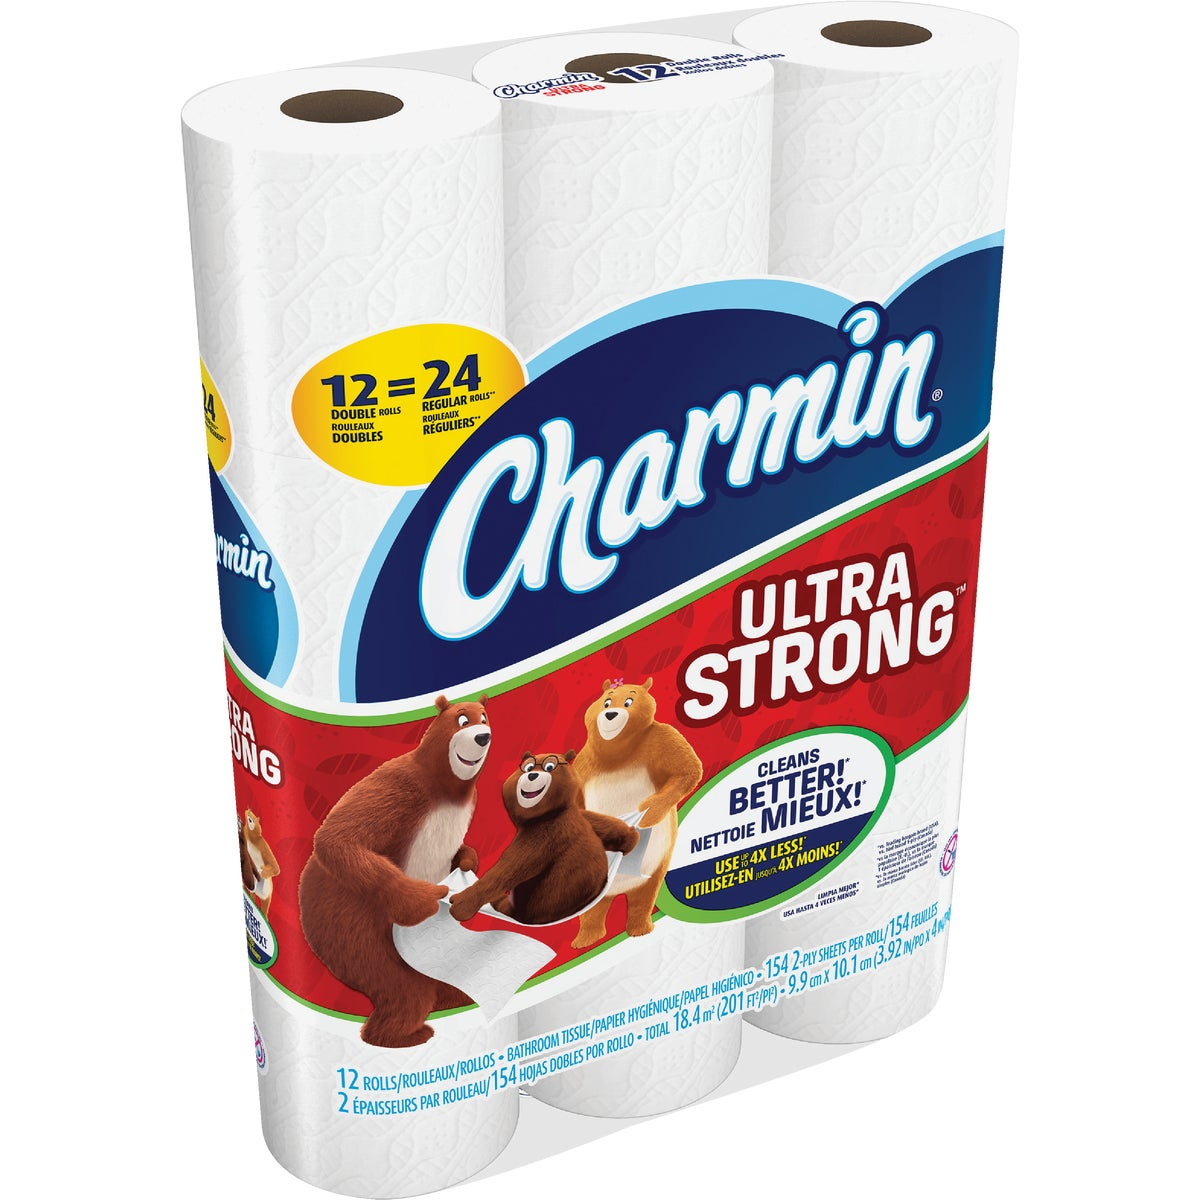 12 DBL RL STRONG CHARMIN - 86505 by Procter & Gamble